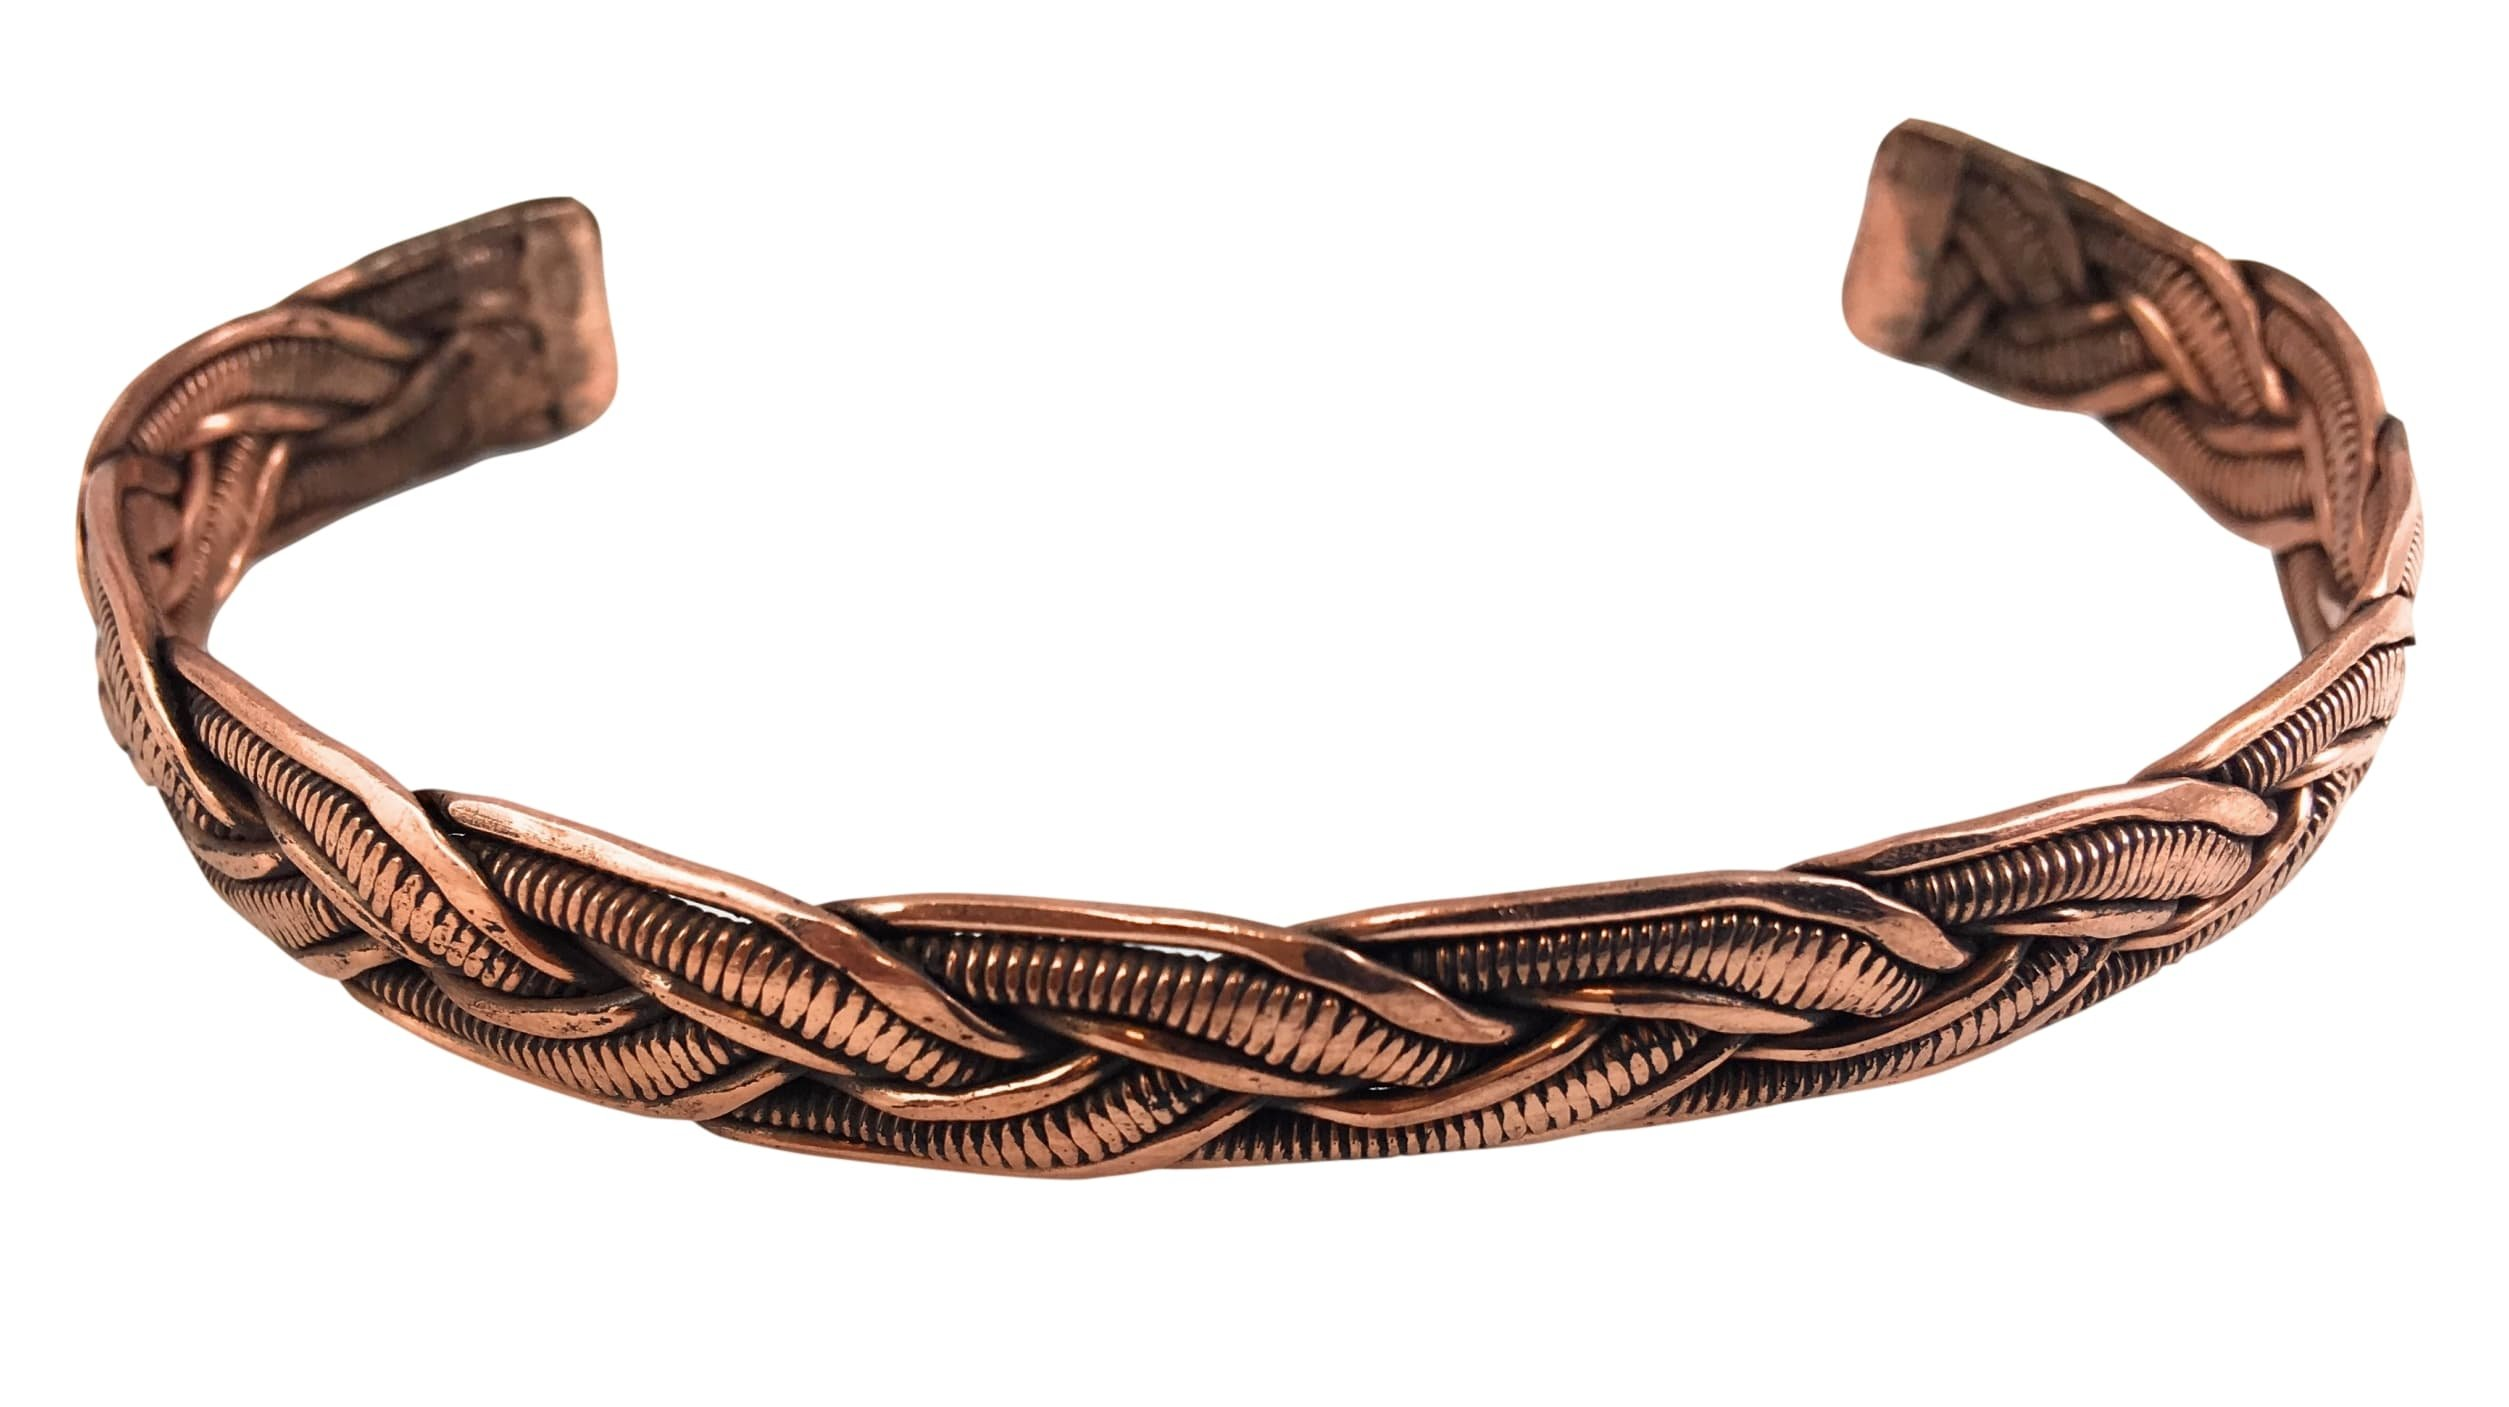 Handmade Copper Bracelet From Nepal by Hands Of Tibet